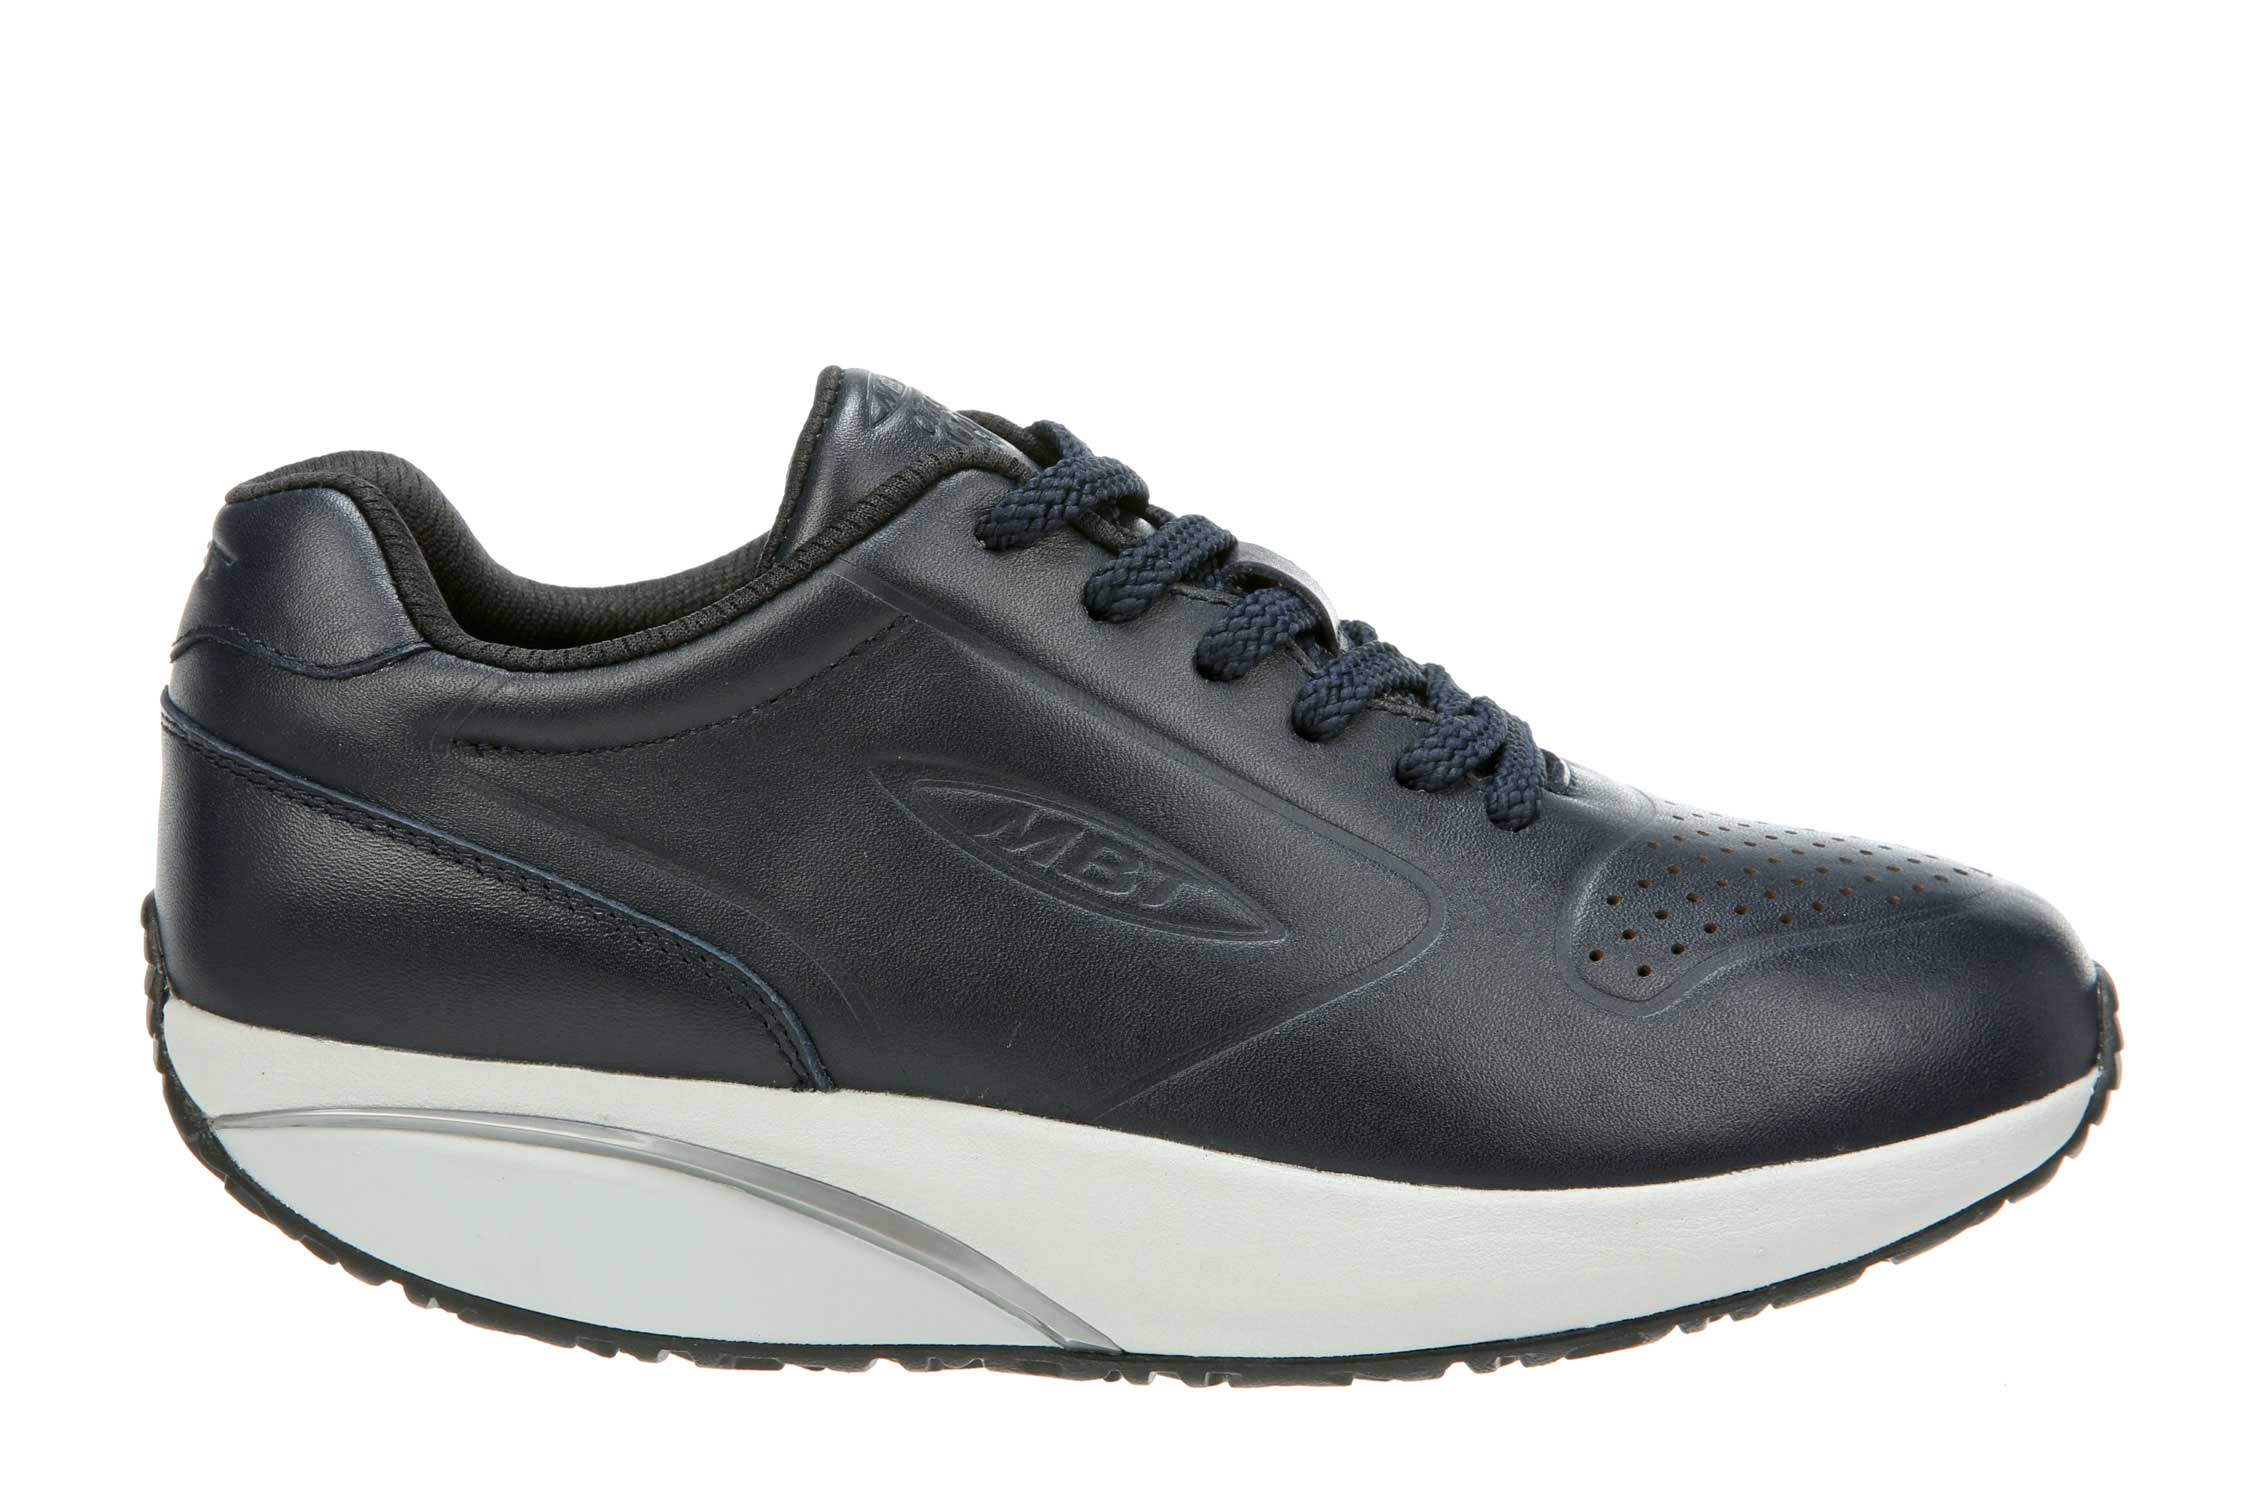 The MBT Shoes Women s MBT 1997 20th Anniversary Special Edition ... 69e38bca78